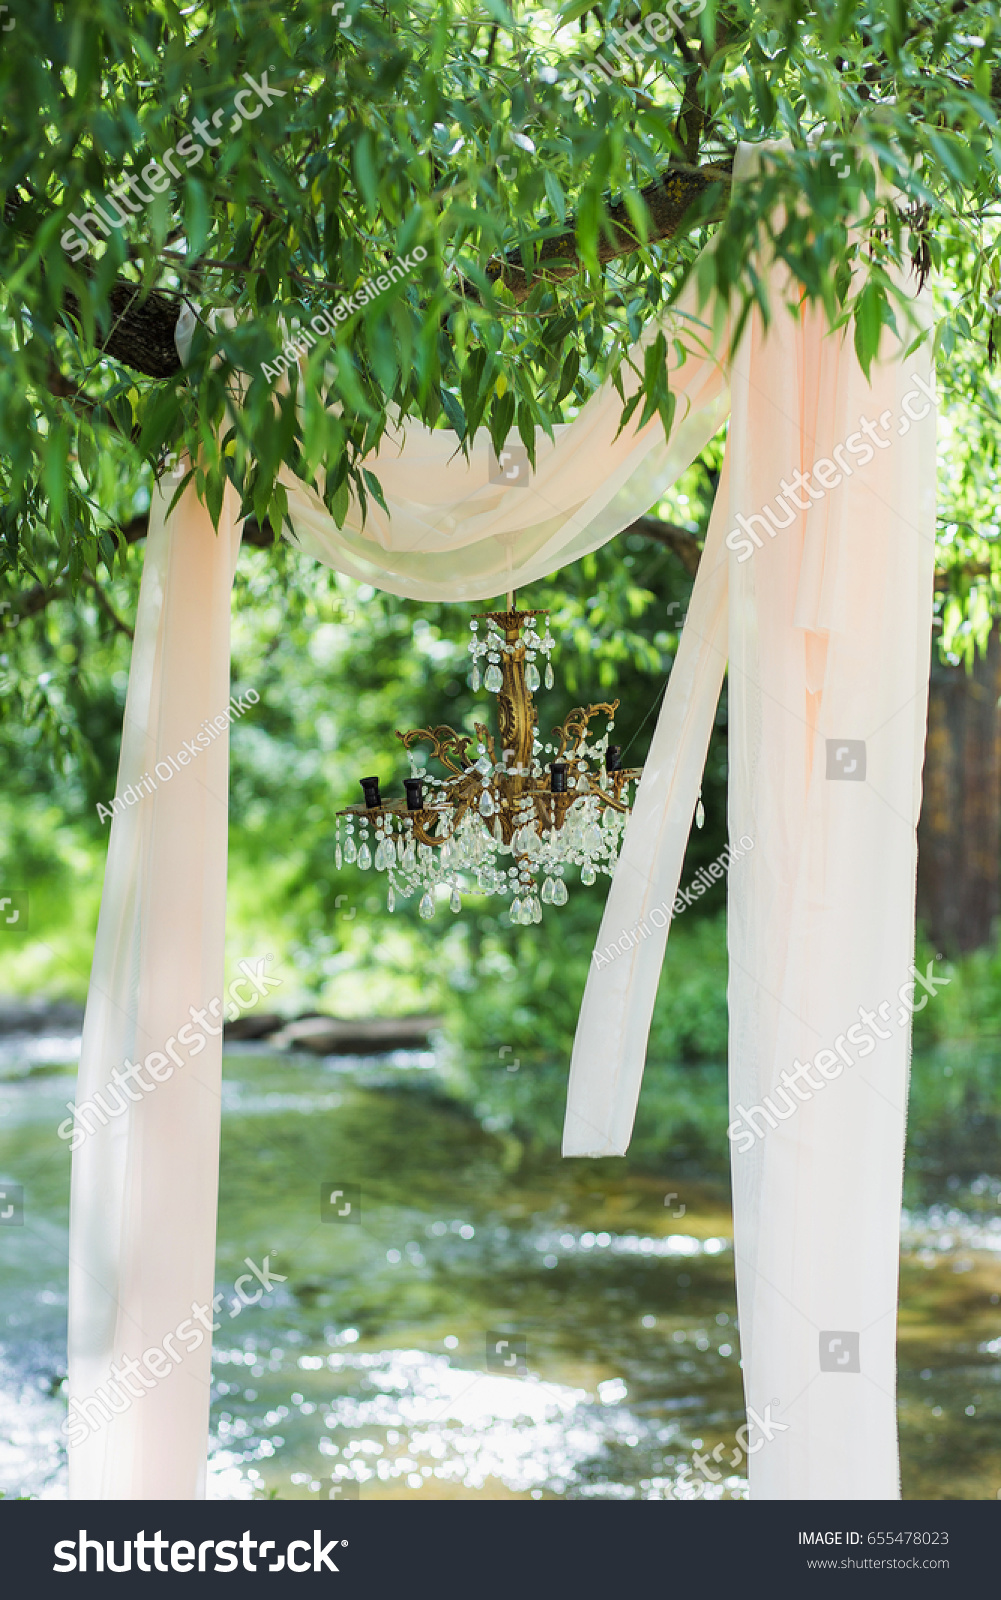 Decor Photobooth Beautiful Luxury Decor Outside Wedding Celebration Stock Photo